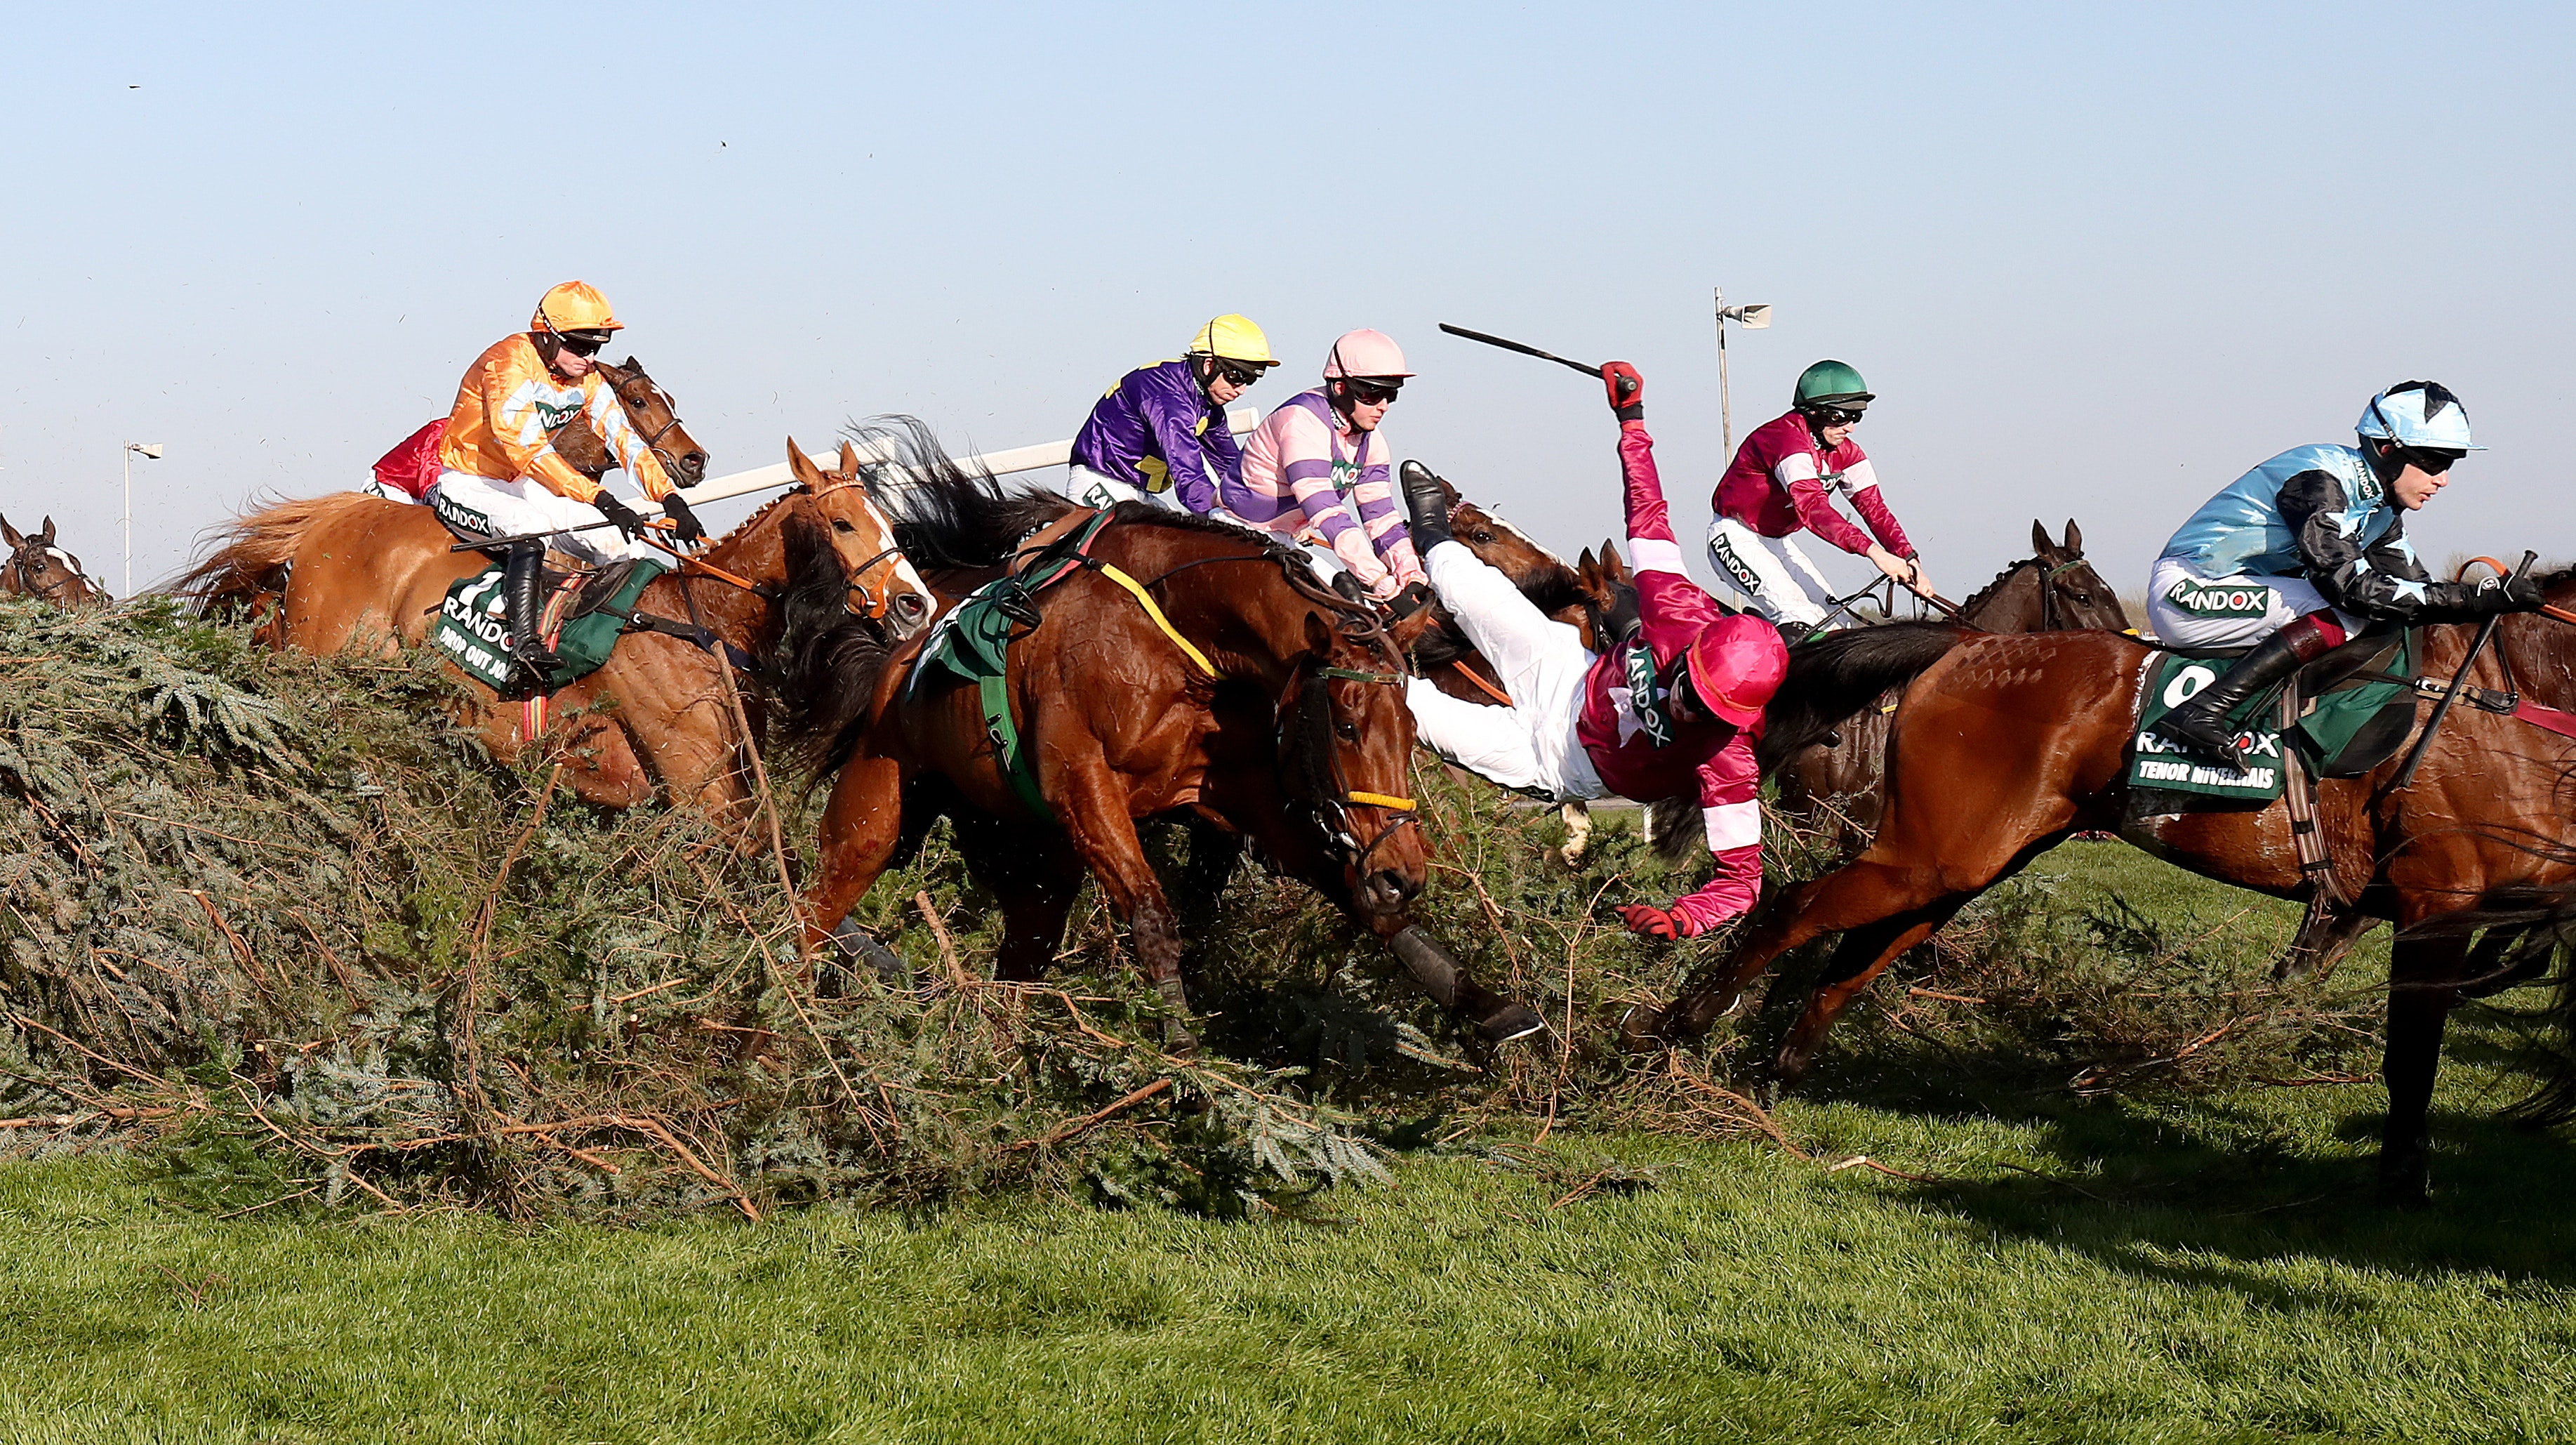 Favourites To Win The Grand National